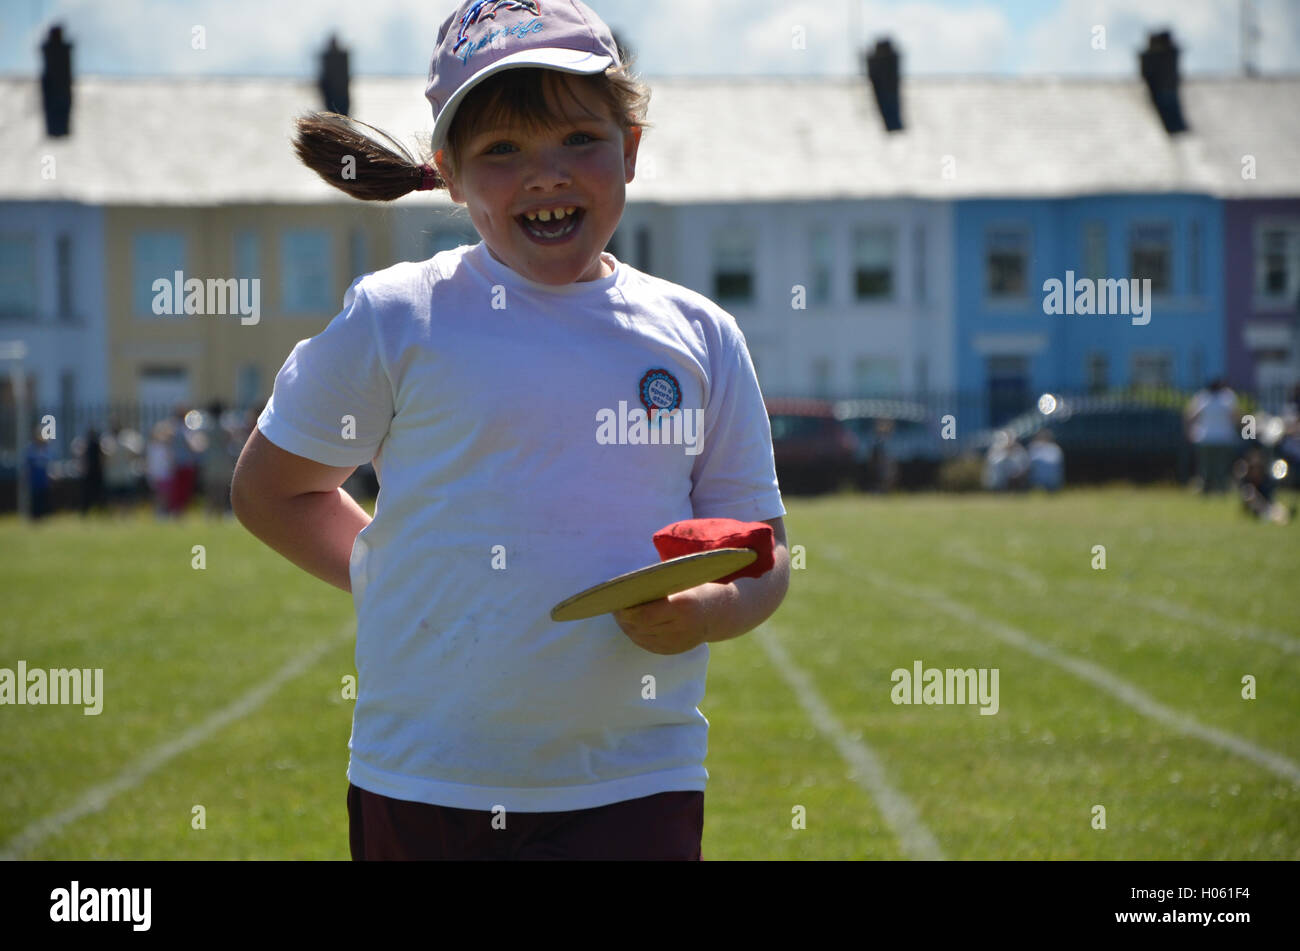 Portrush , Northern Ireland - June 12th, 2013 :- Sports Day A young female child runs down a track balancing a bean - Stock Image